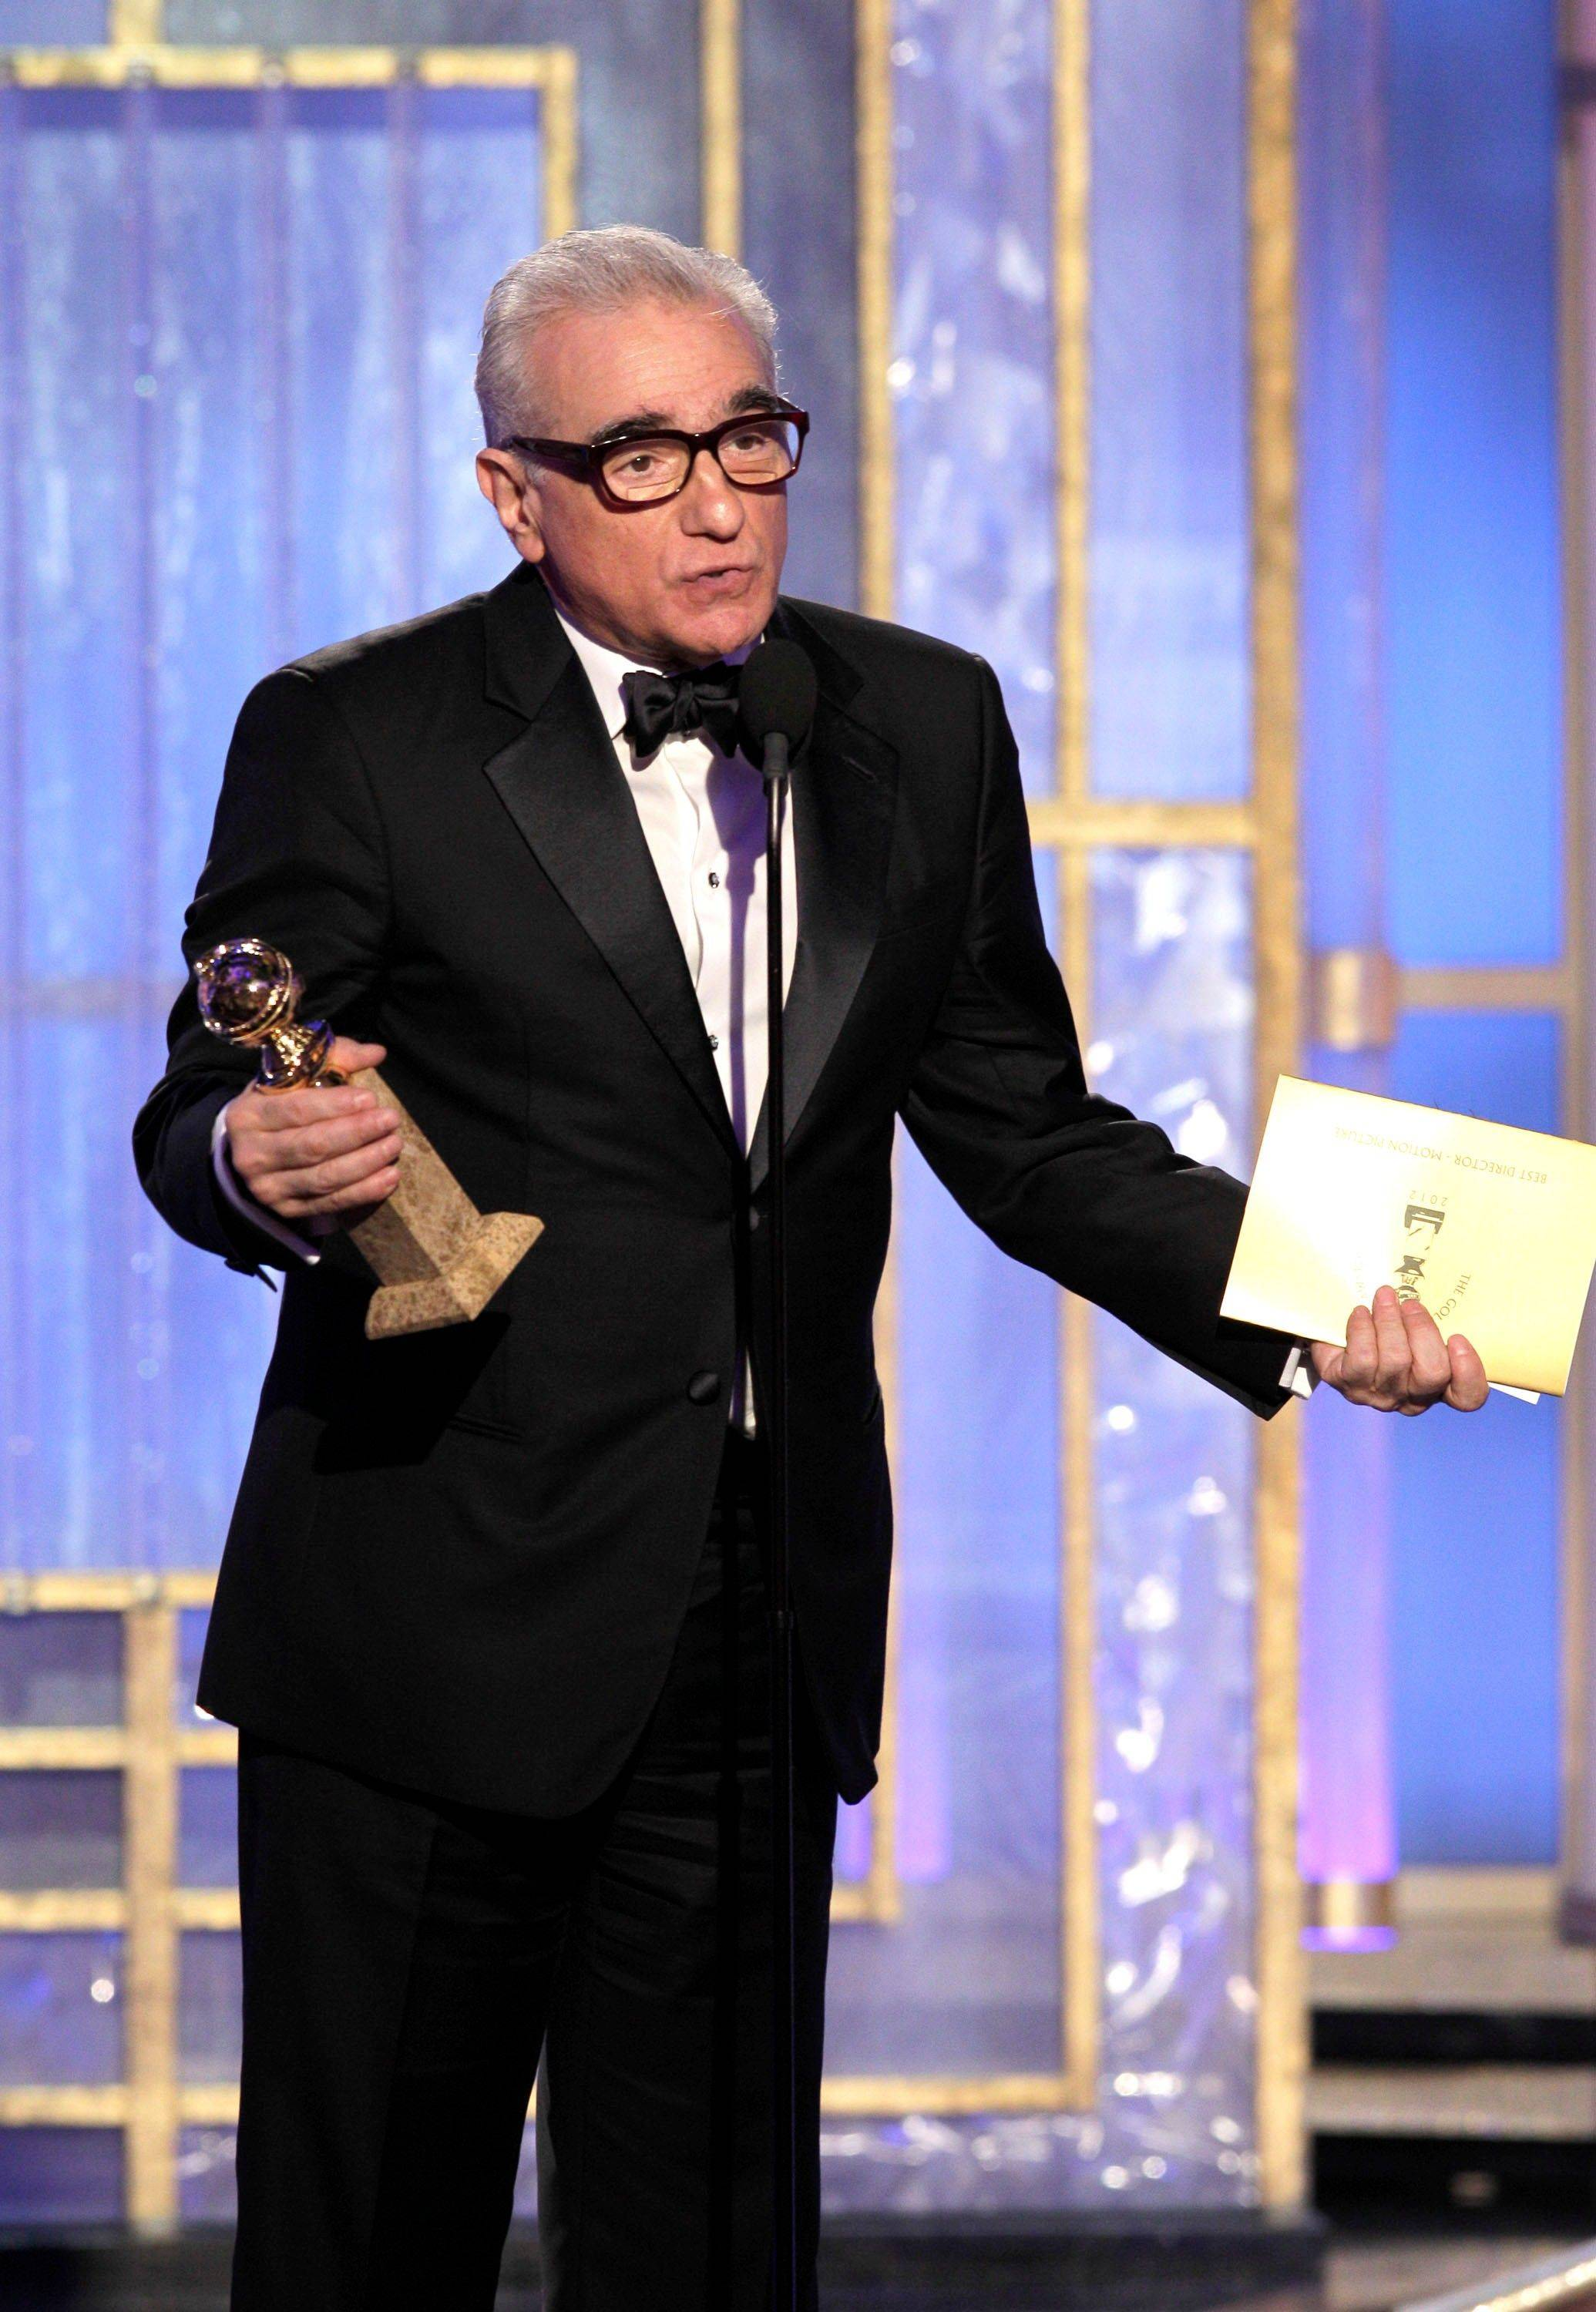 In this image released by NBC, Martin Scorcese accepts the award for Best Director of a Motion Picture during the 69th Annual Golden Globe Awards on Sunday, Jan. 15, 2012 in Los Angeles.